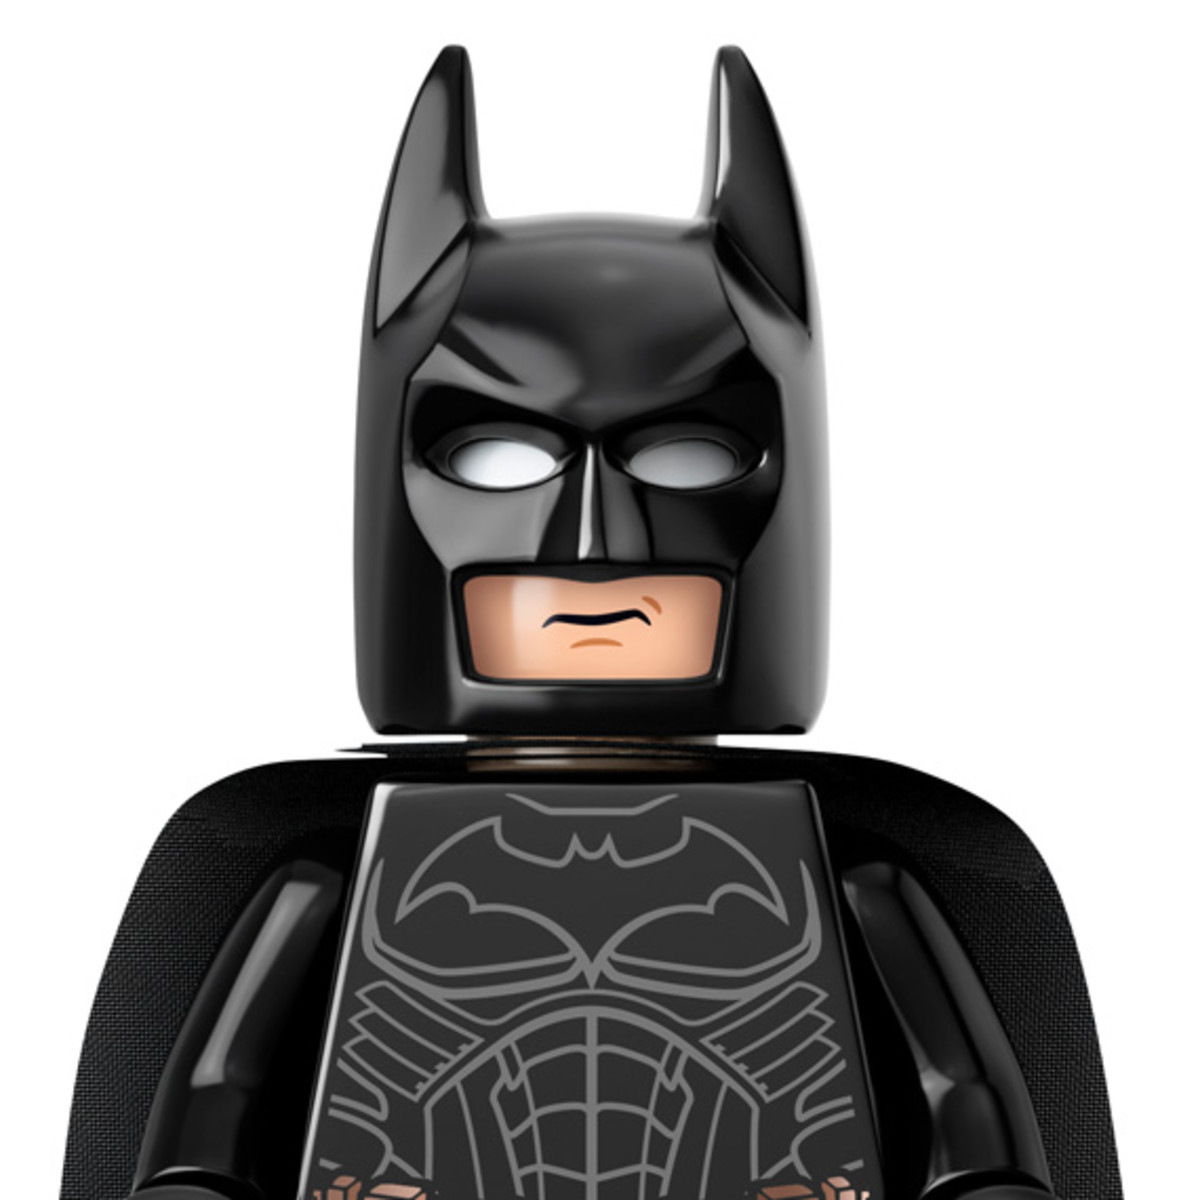 lego-dc-comics-super-heroes-batman-the-dark-knight-trilogy-tumbler-kit-available-25